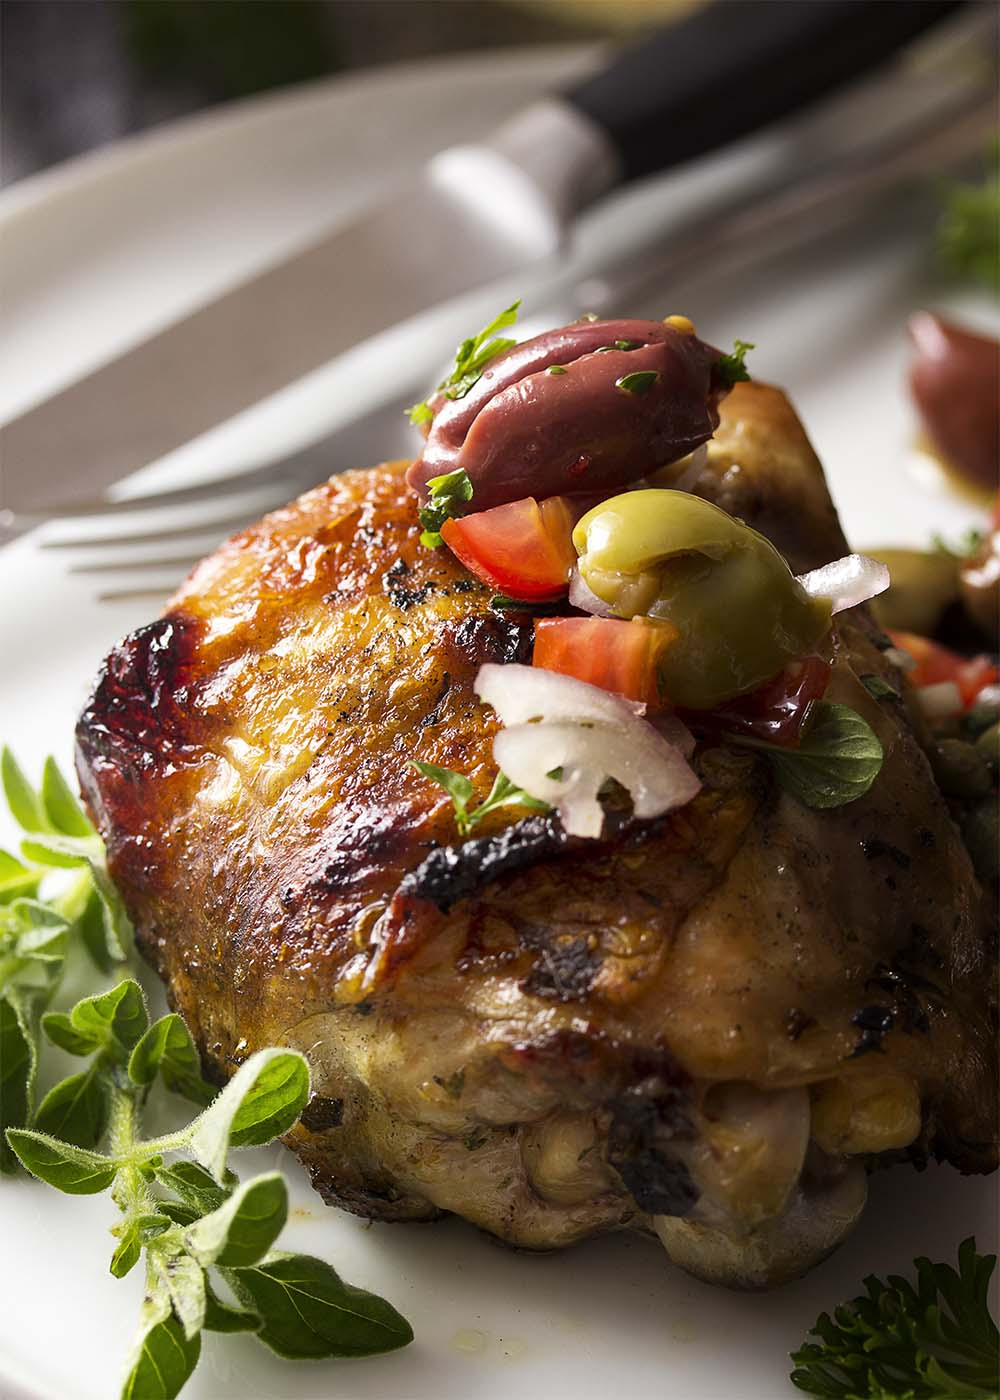 Close up of a grilled Mediterranean chicken thigh with olive tomato salsa spooned over the top and a focus on the crispy skin.